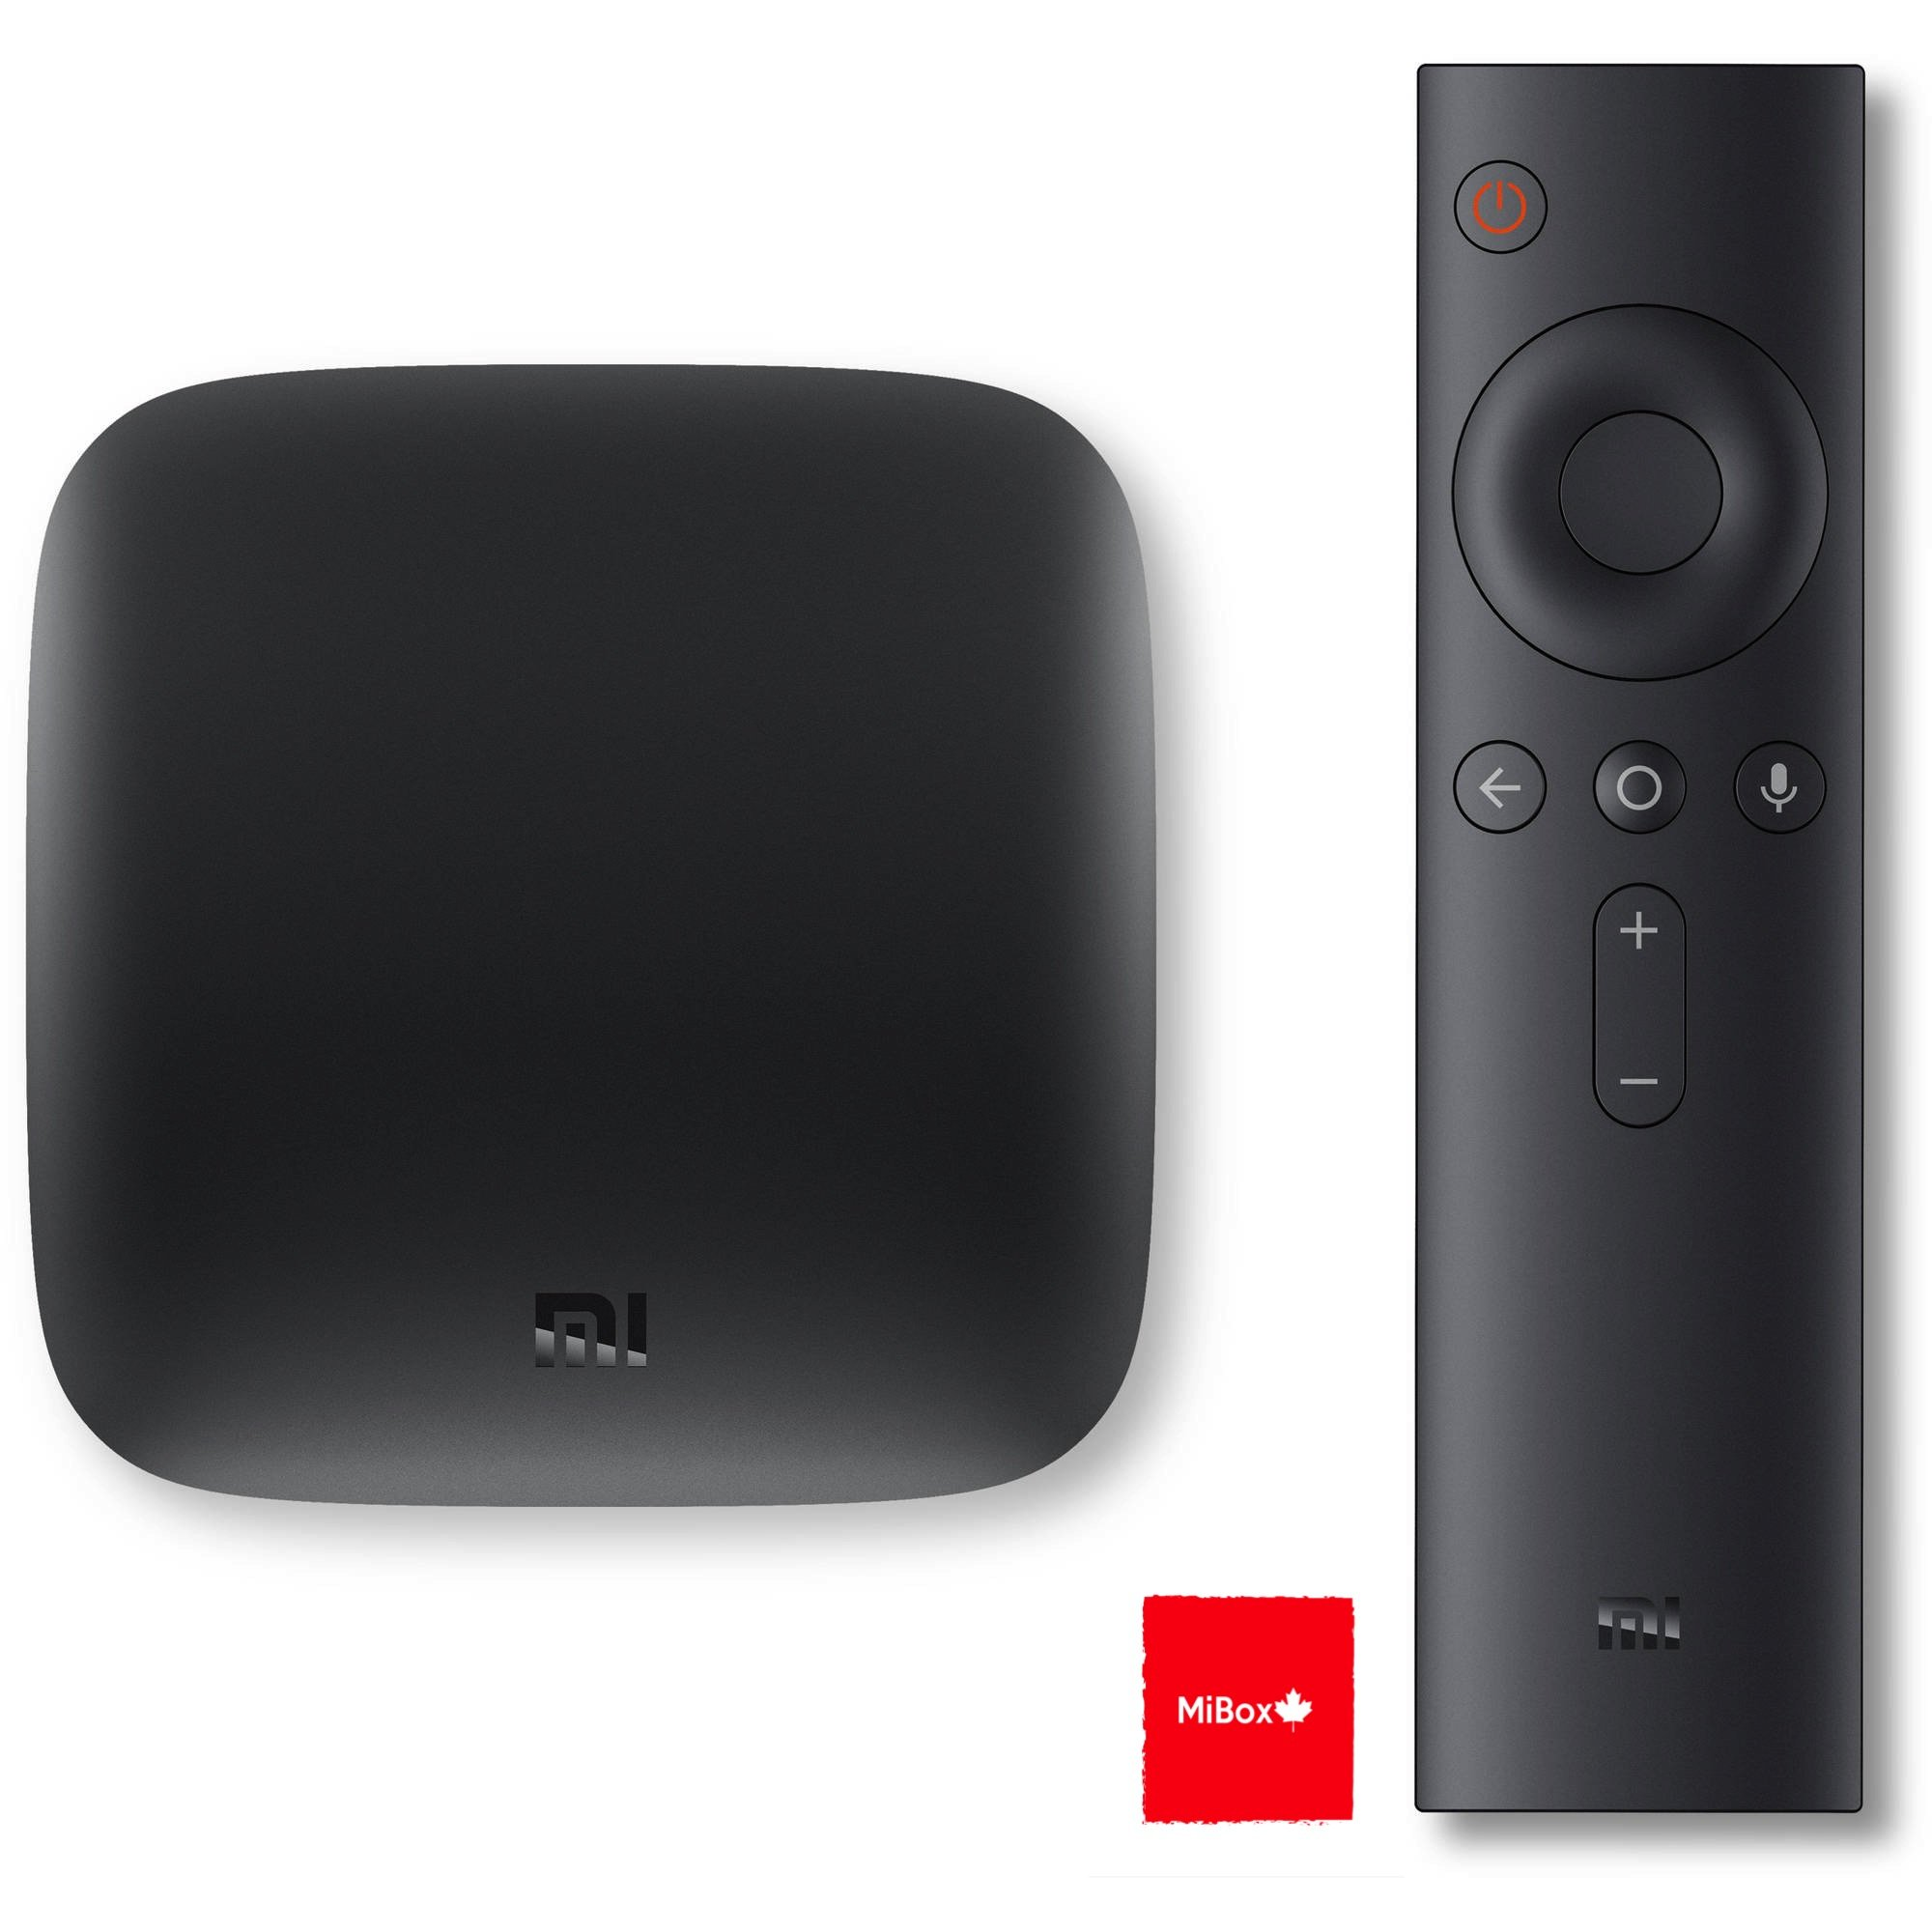 BuzzTV XPL3000 Quad Core Android TV Box and Premium Streaming Media Player Powered by 6 Marshmallow